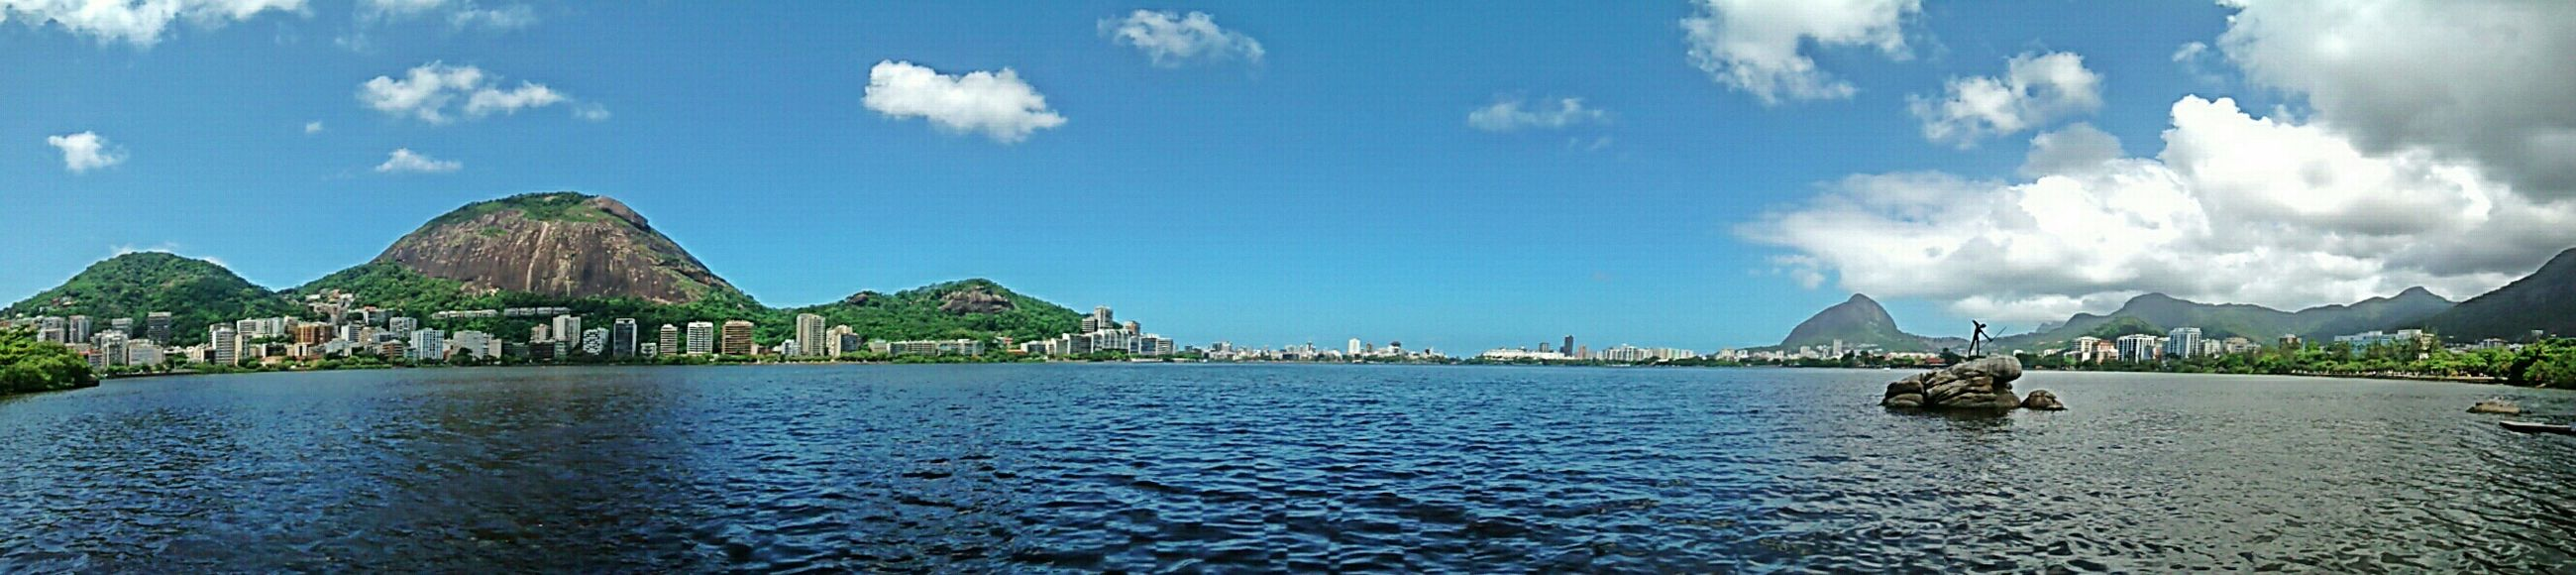 Bye rio ? Panorama Landscape Sea Taking Photos Hello World Nature Aky Clouds Montain  Nofilter